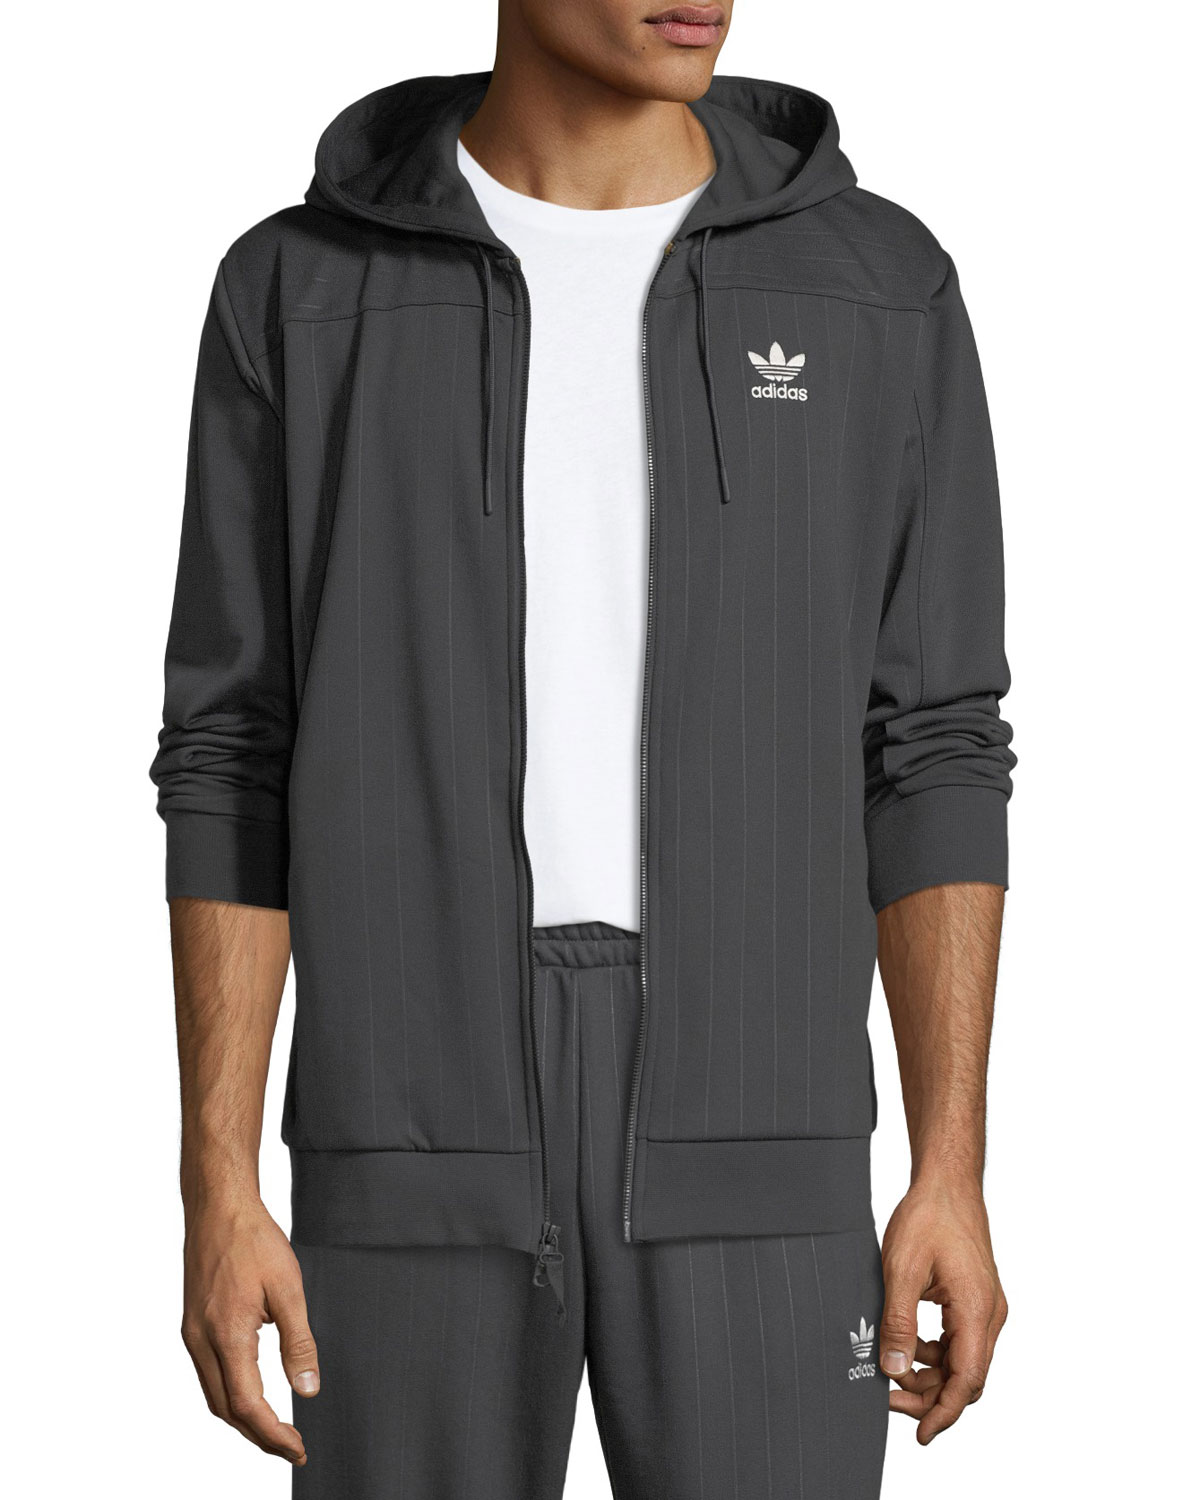 Men's Pinstriped Zip-Front Hoodie Sweatshirt